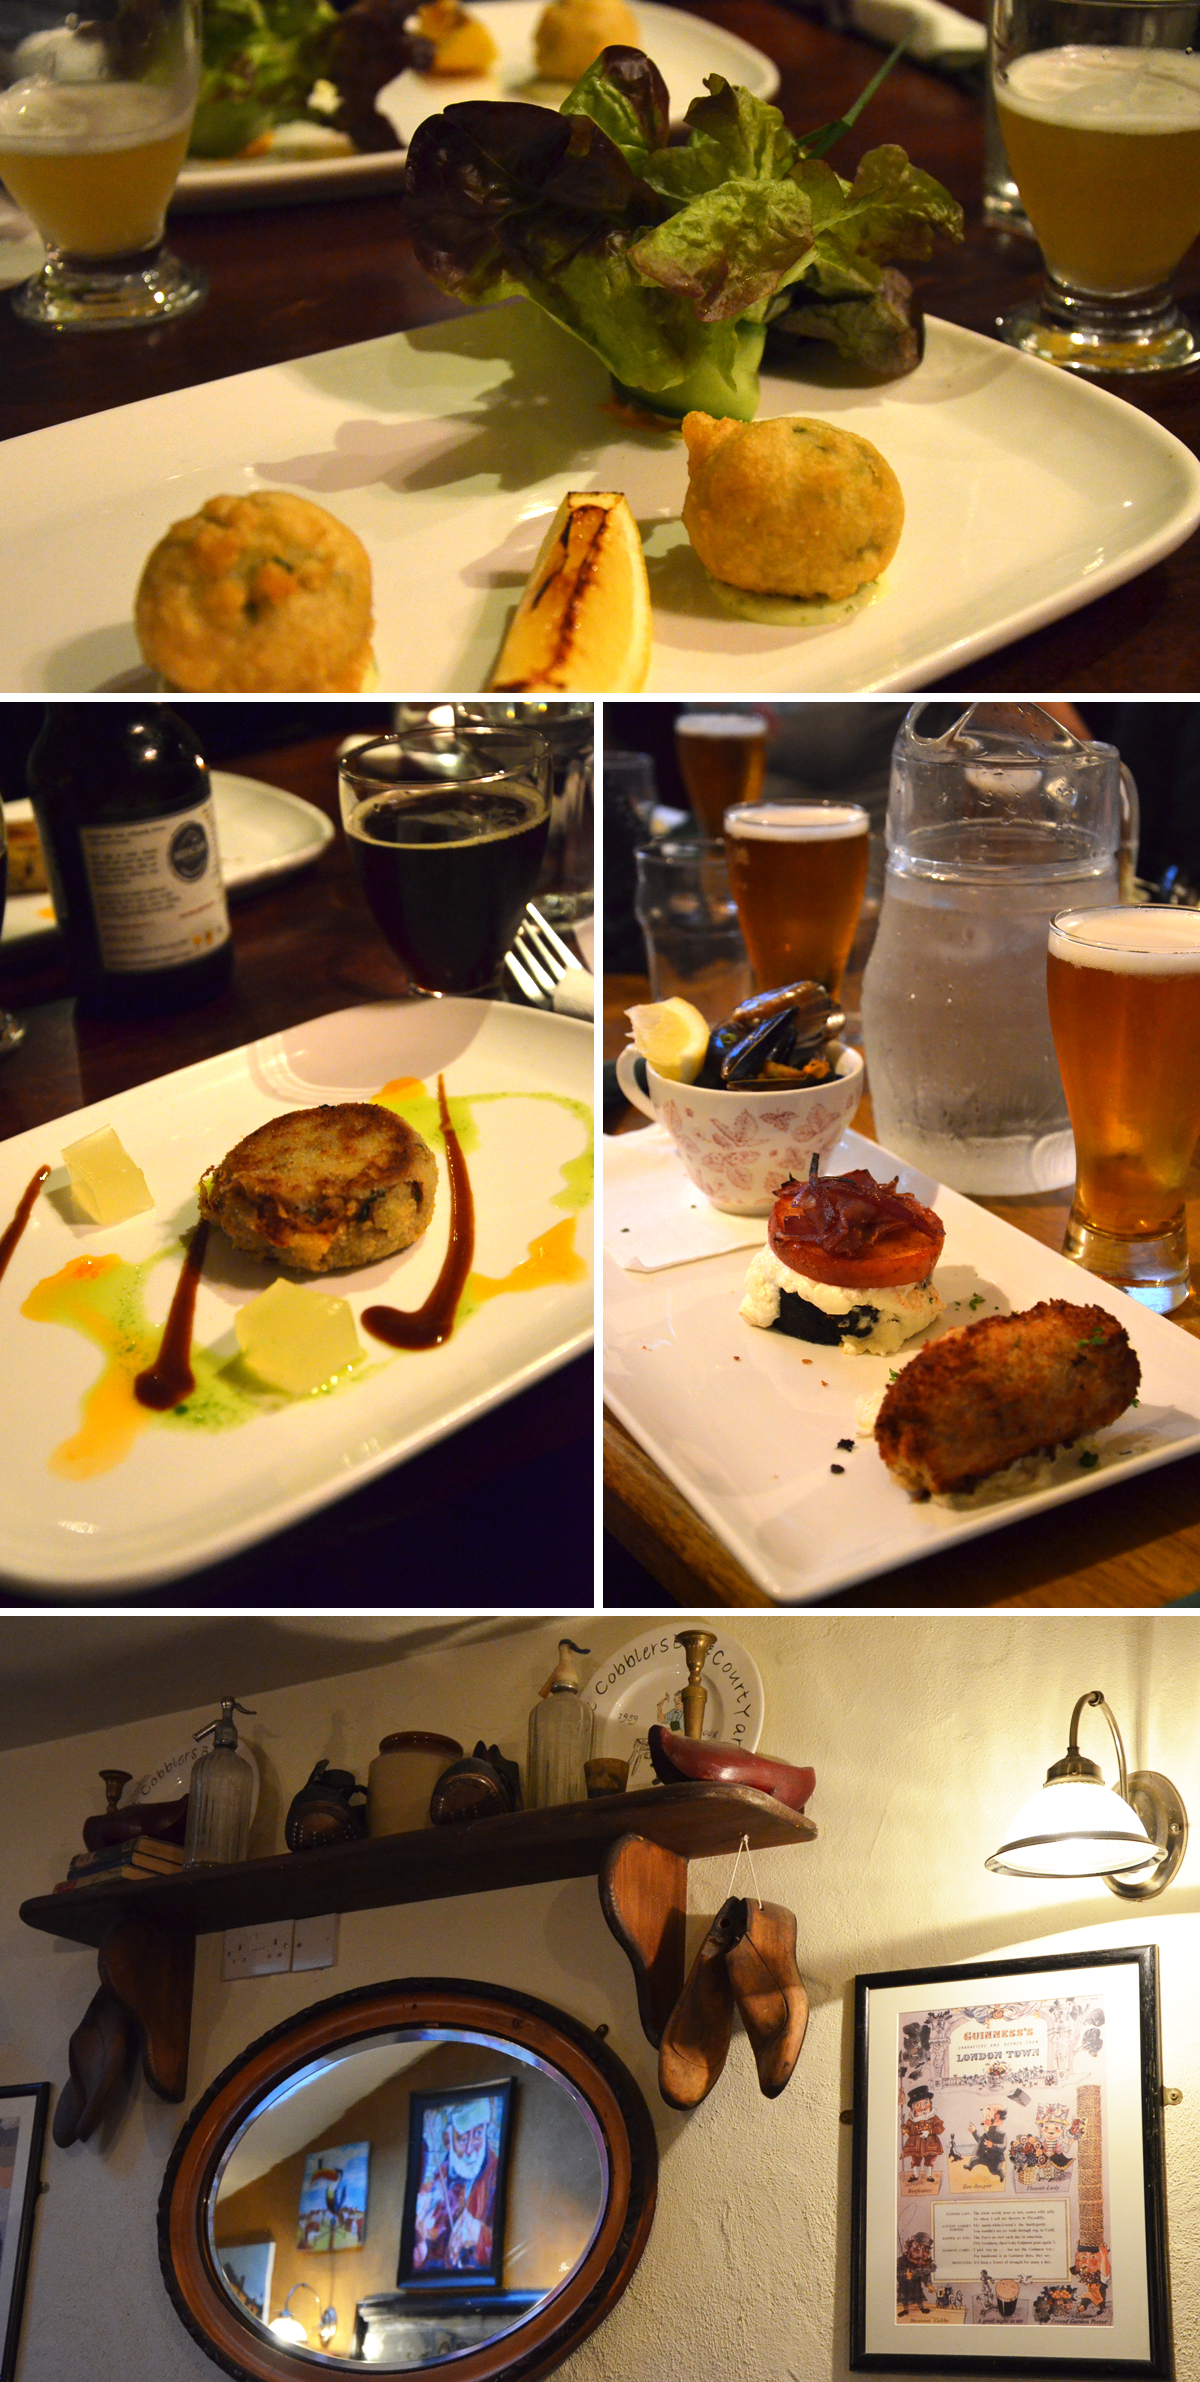 L'Irlande hors des sentiers battus : Irish craft beer & gourmet tapas tour